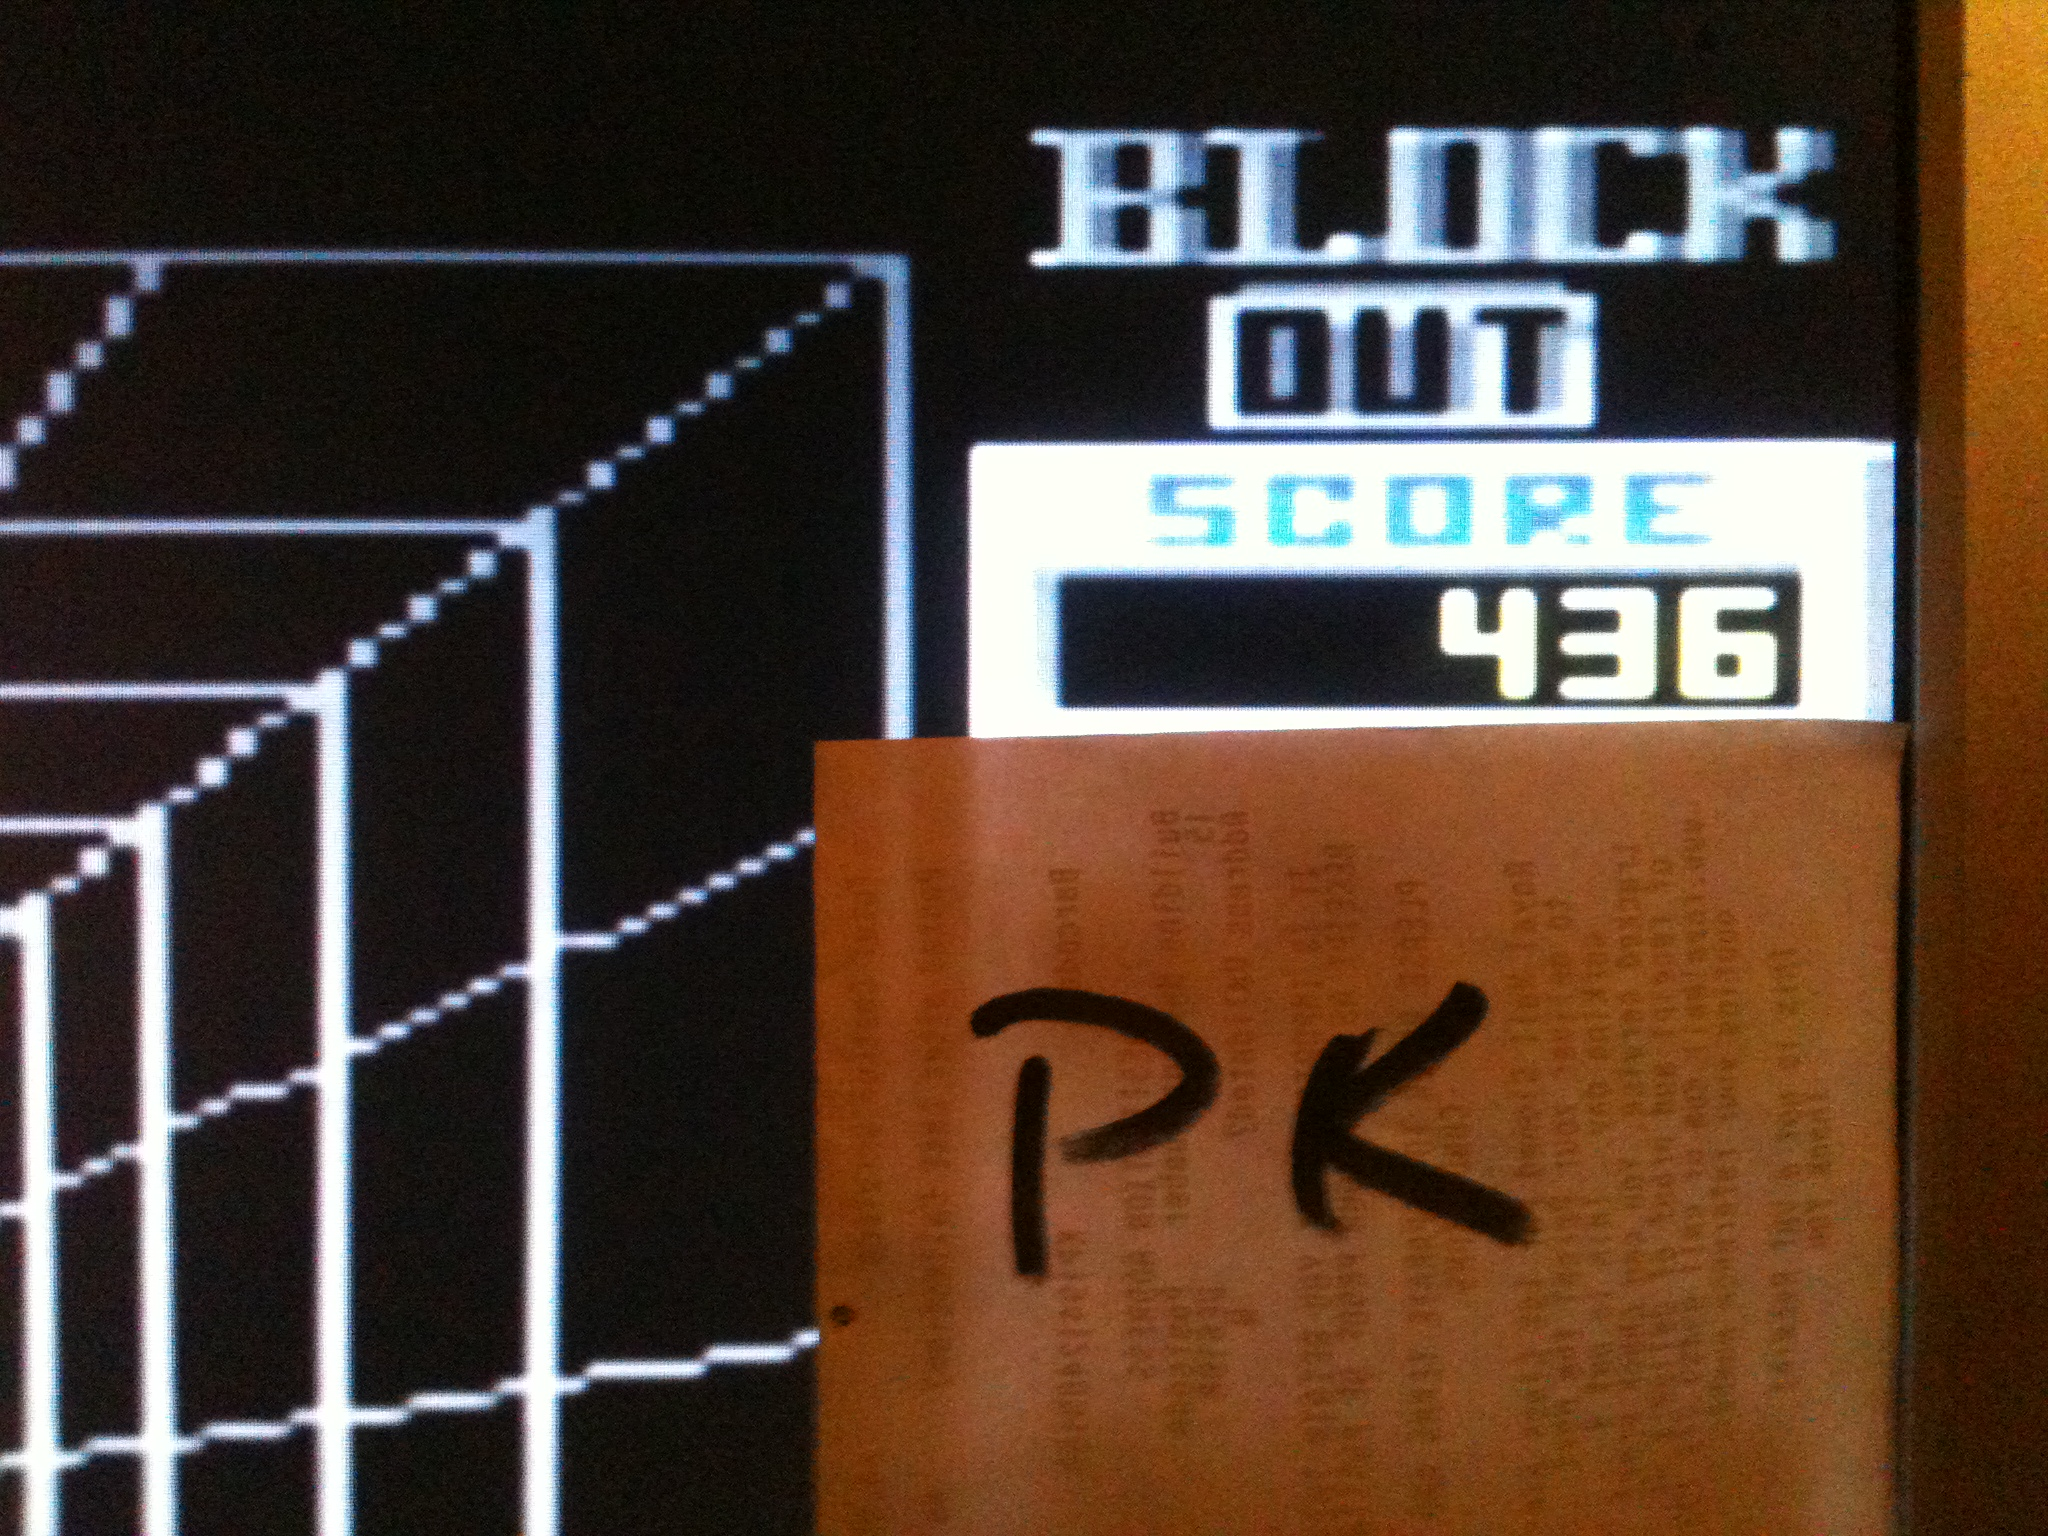 kernzy: Block Out (Commodore 64 Emulated) 436 points on 2015-09-23 13:28:28